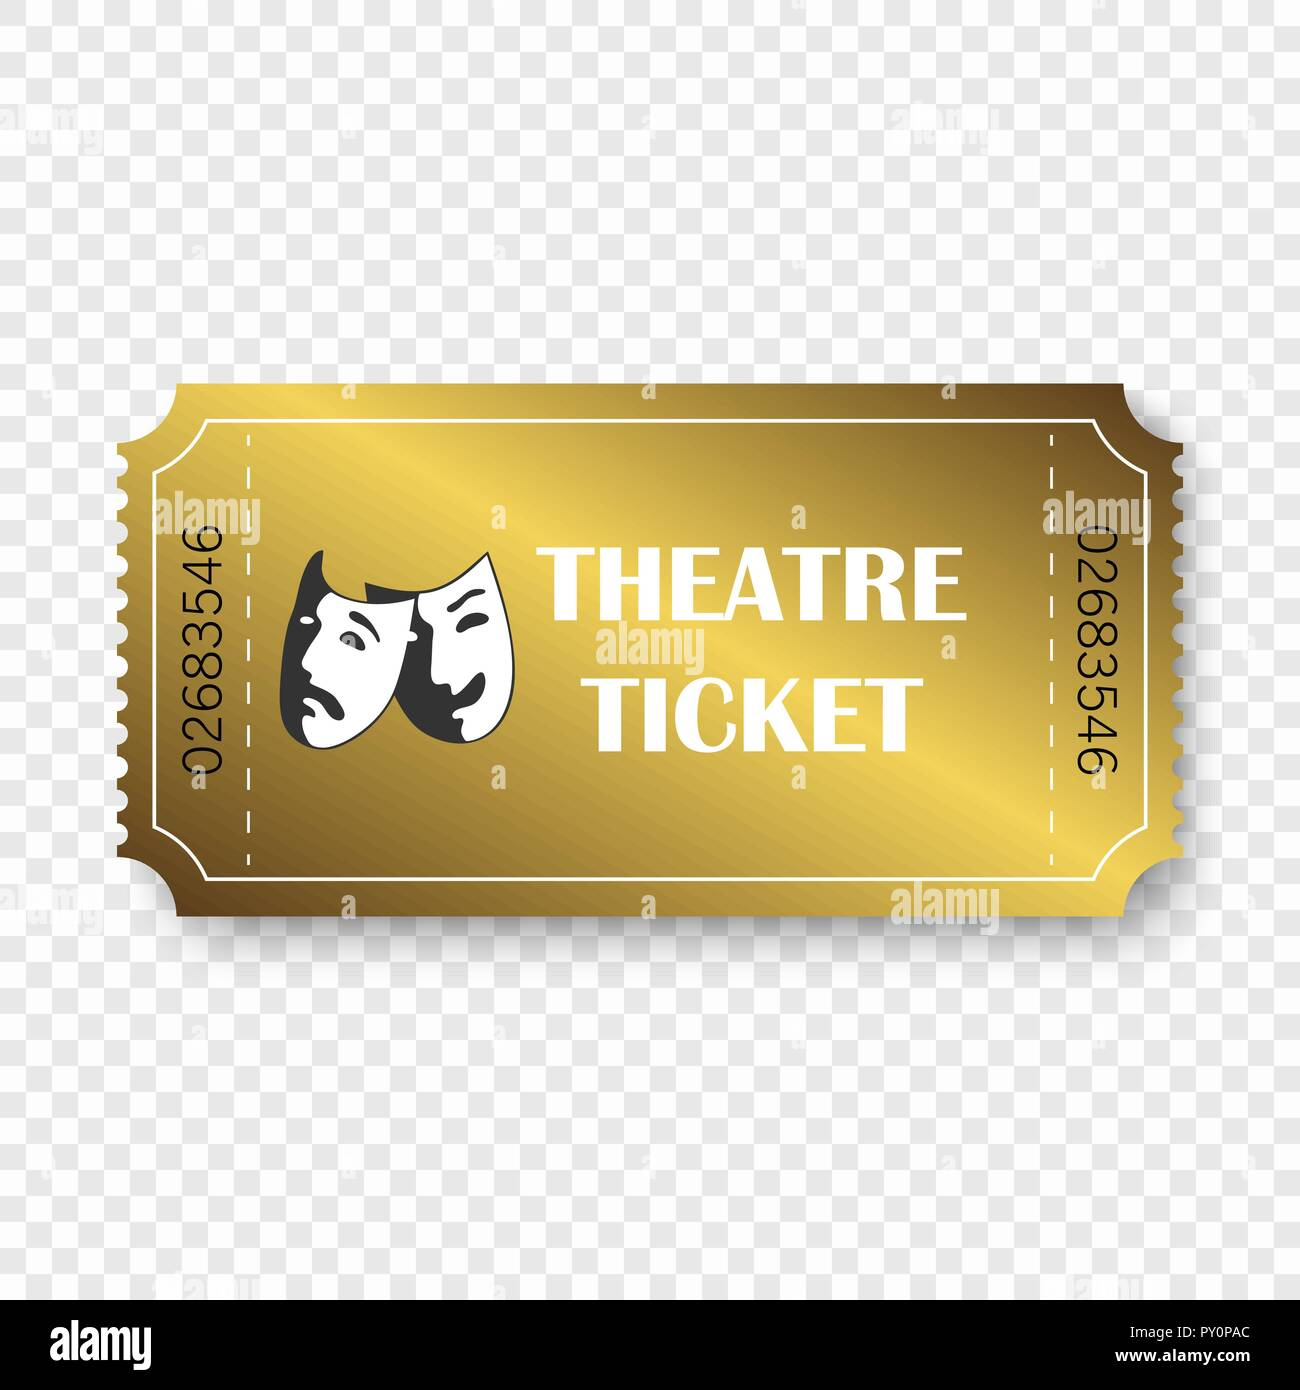 theatre ticket isolated on transparent background template for